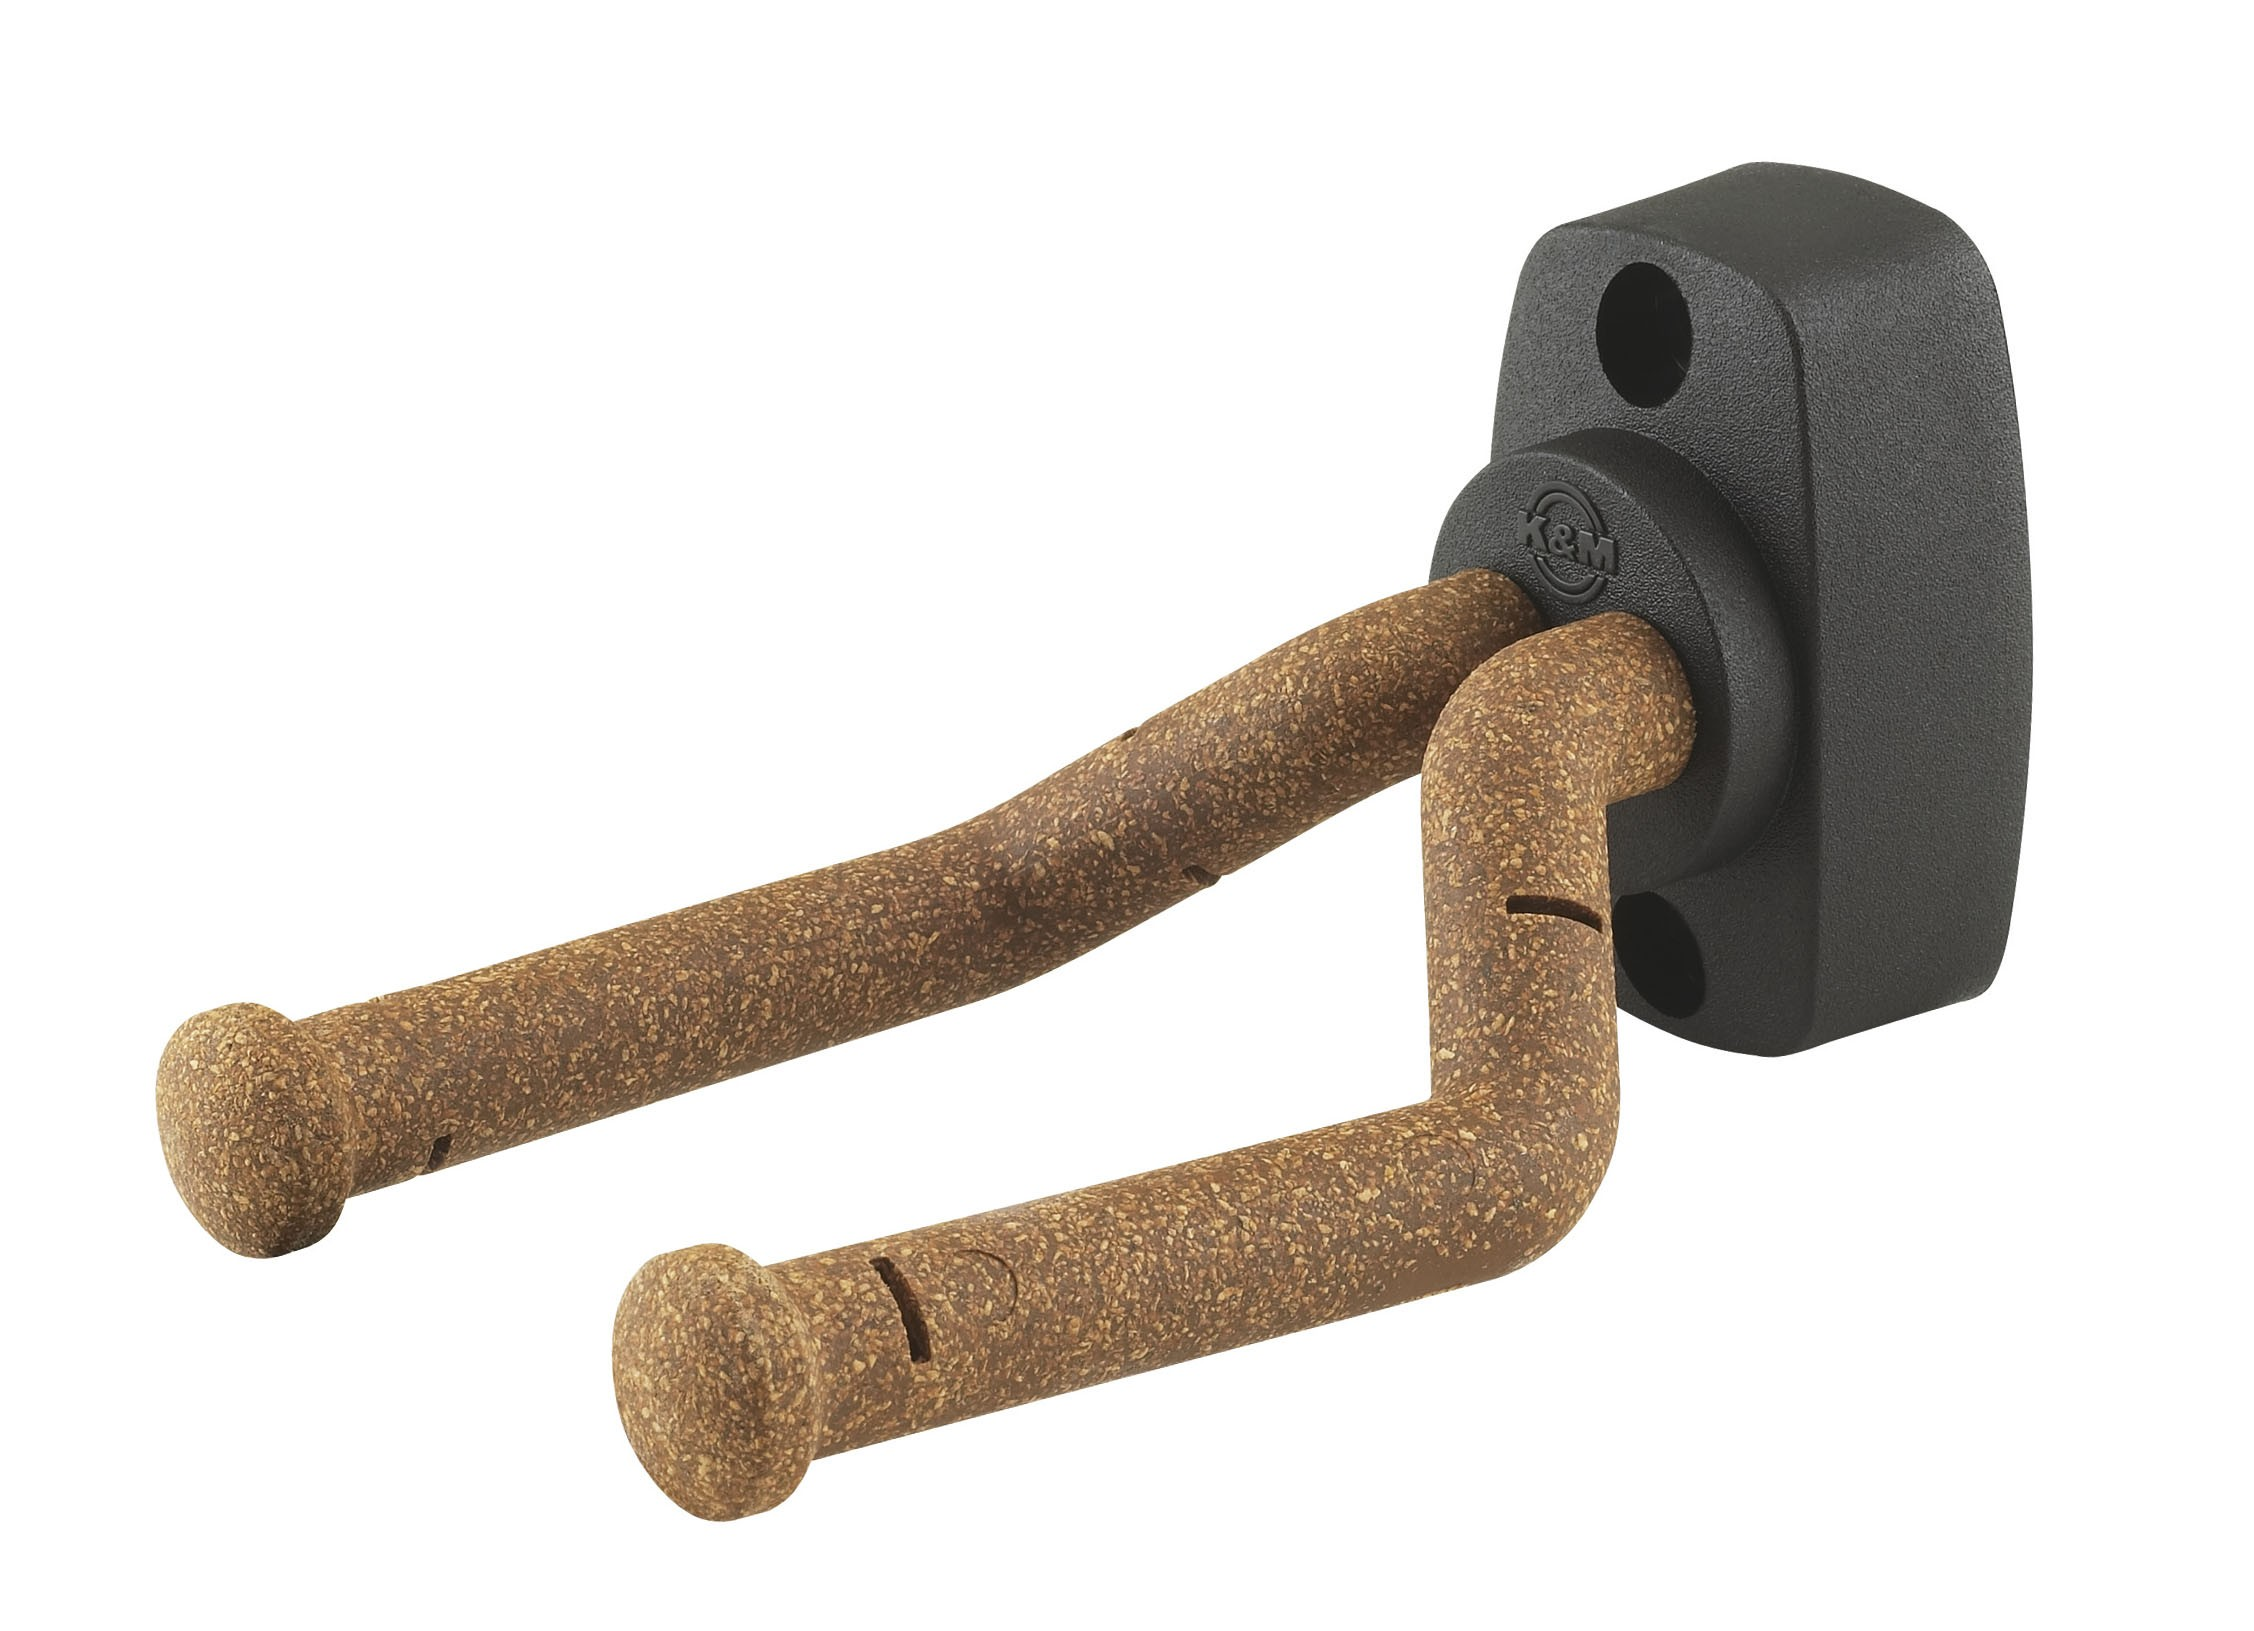 Konig & Meyer 16280 Guitar Wall Mount - Cork